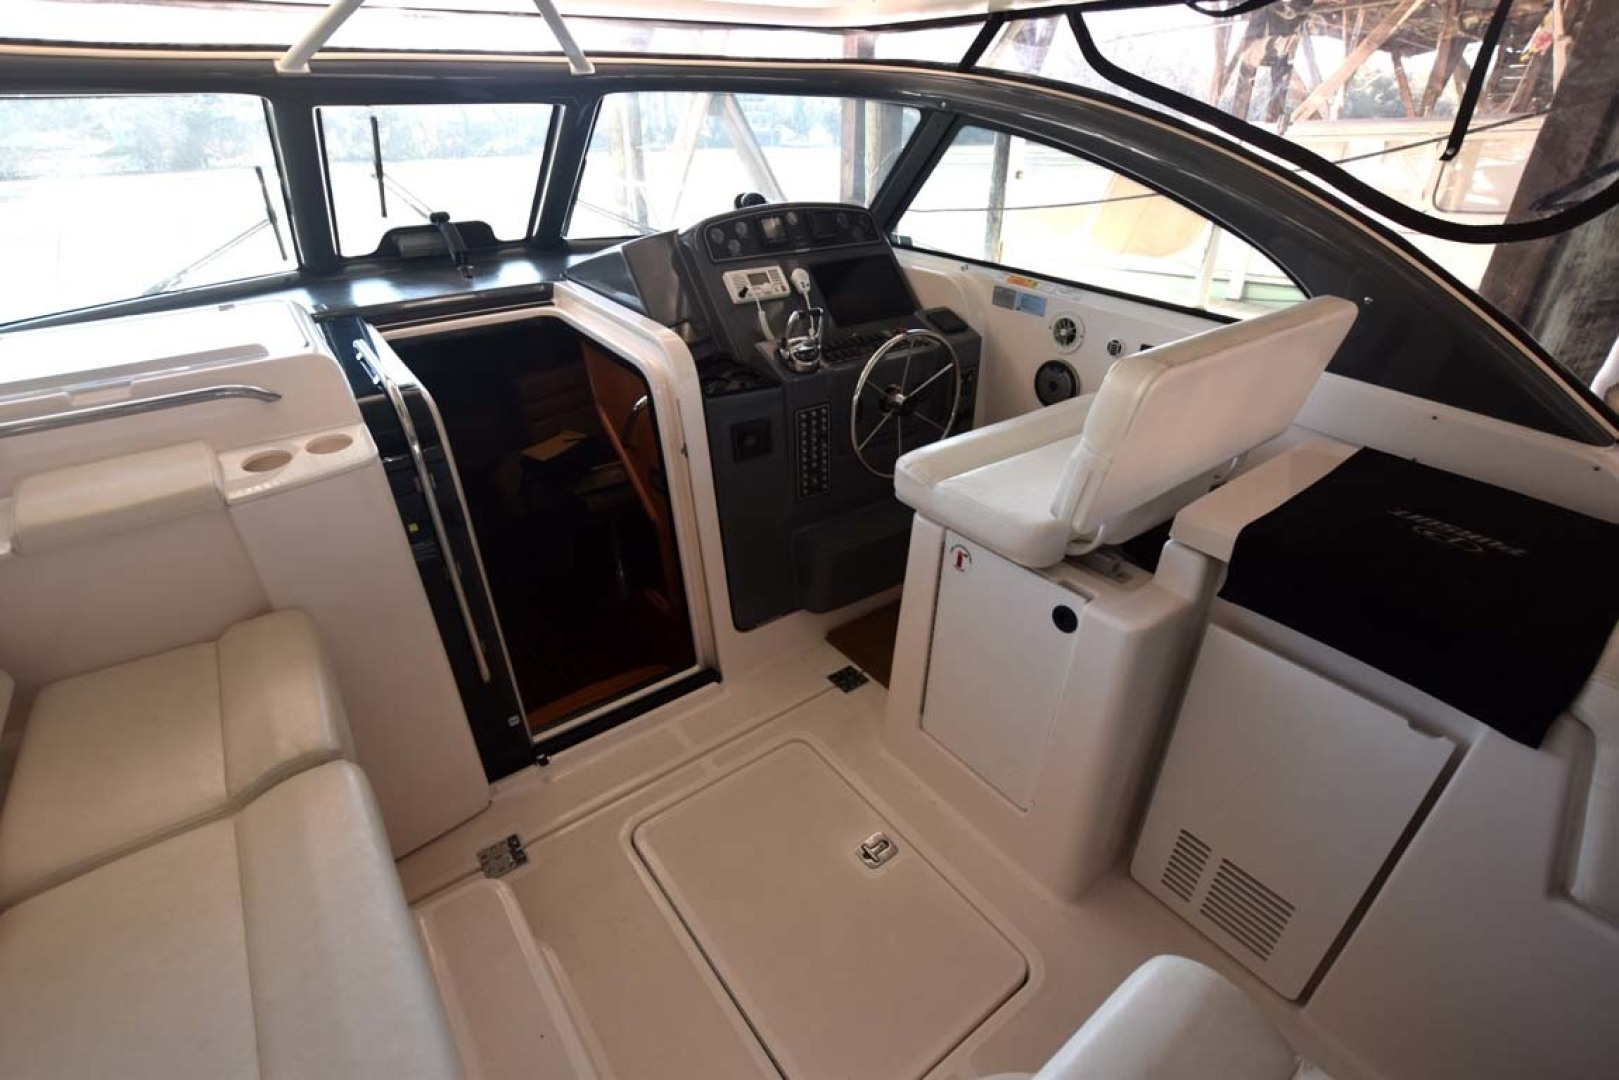 Pursuit-3800 Express 2004-Emeritus Severna Park-Maryland-United States-Helm Area, Cabin Entry-1629120 | Thumbnail